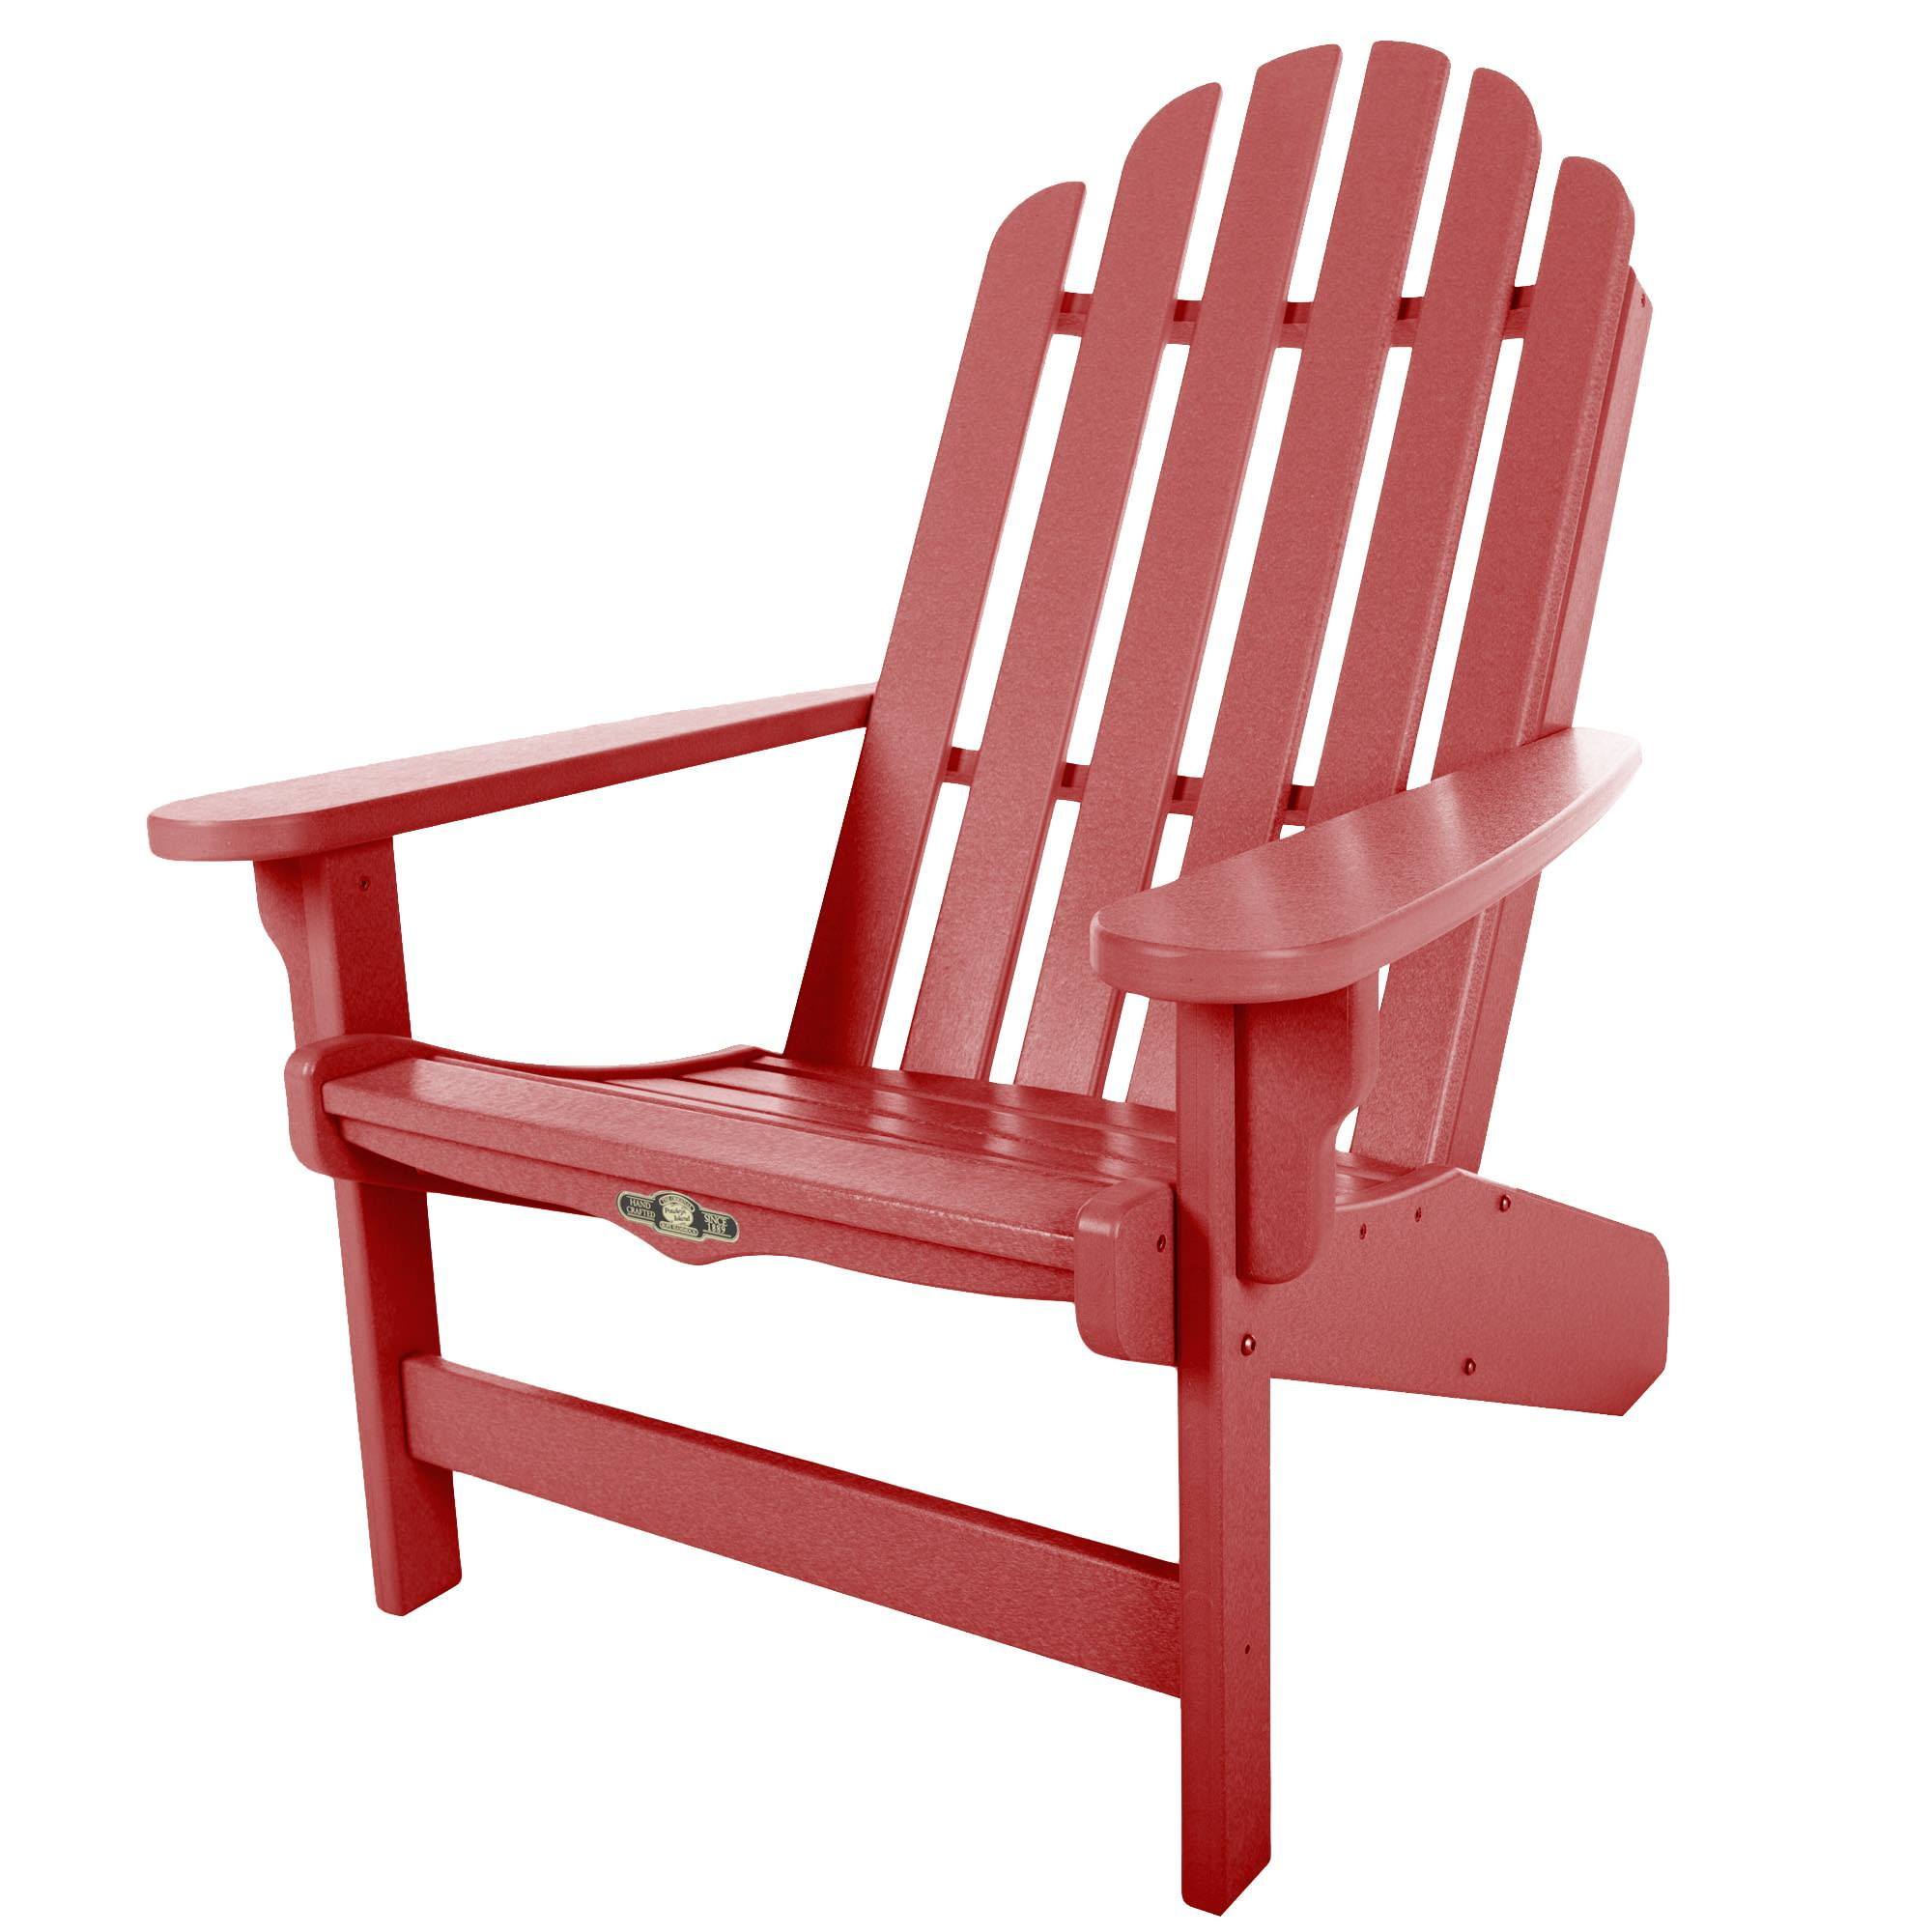 Shop Durawood Essentials Adirondack Chairs on Sale